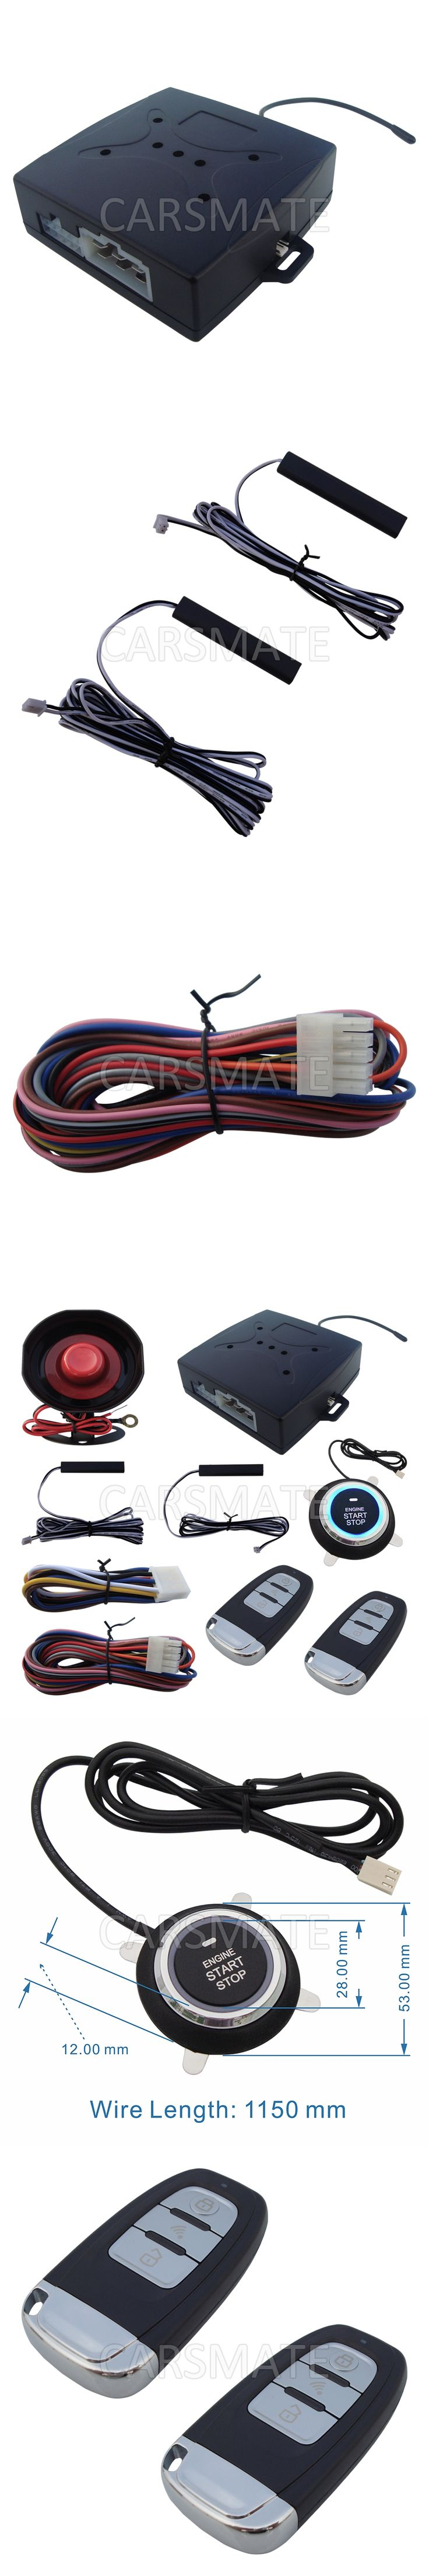 Universal Rolling Code PKE Car Alarm System With Car Engine Start Stop Auto Lock & Unlock